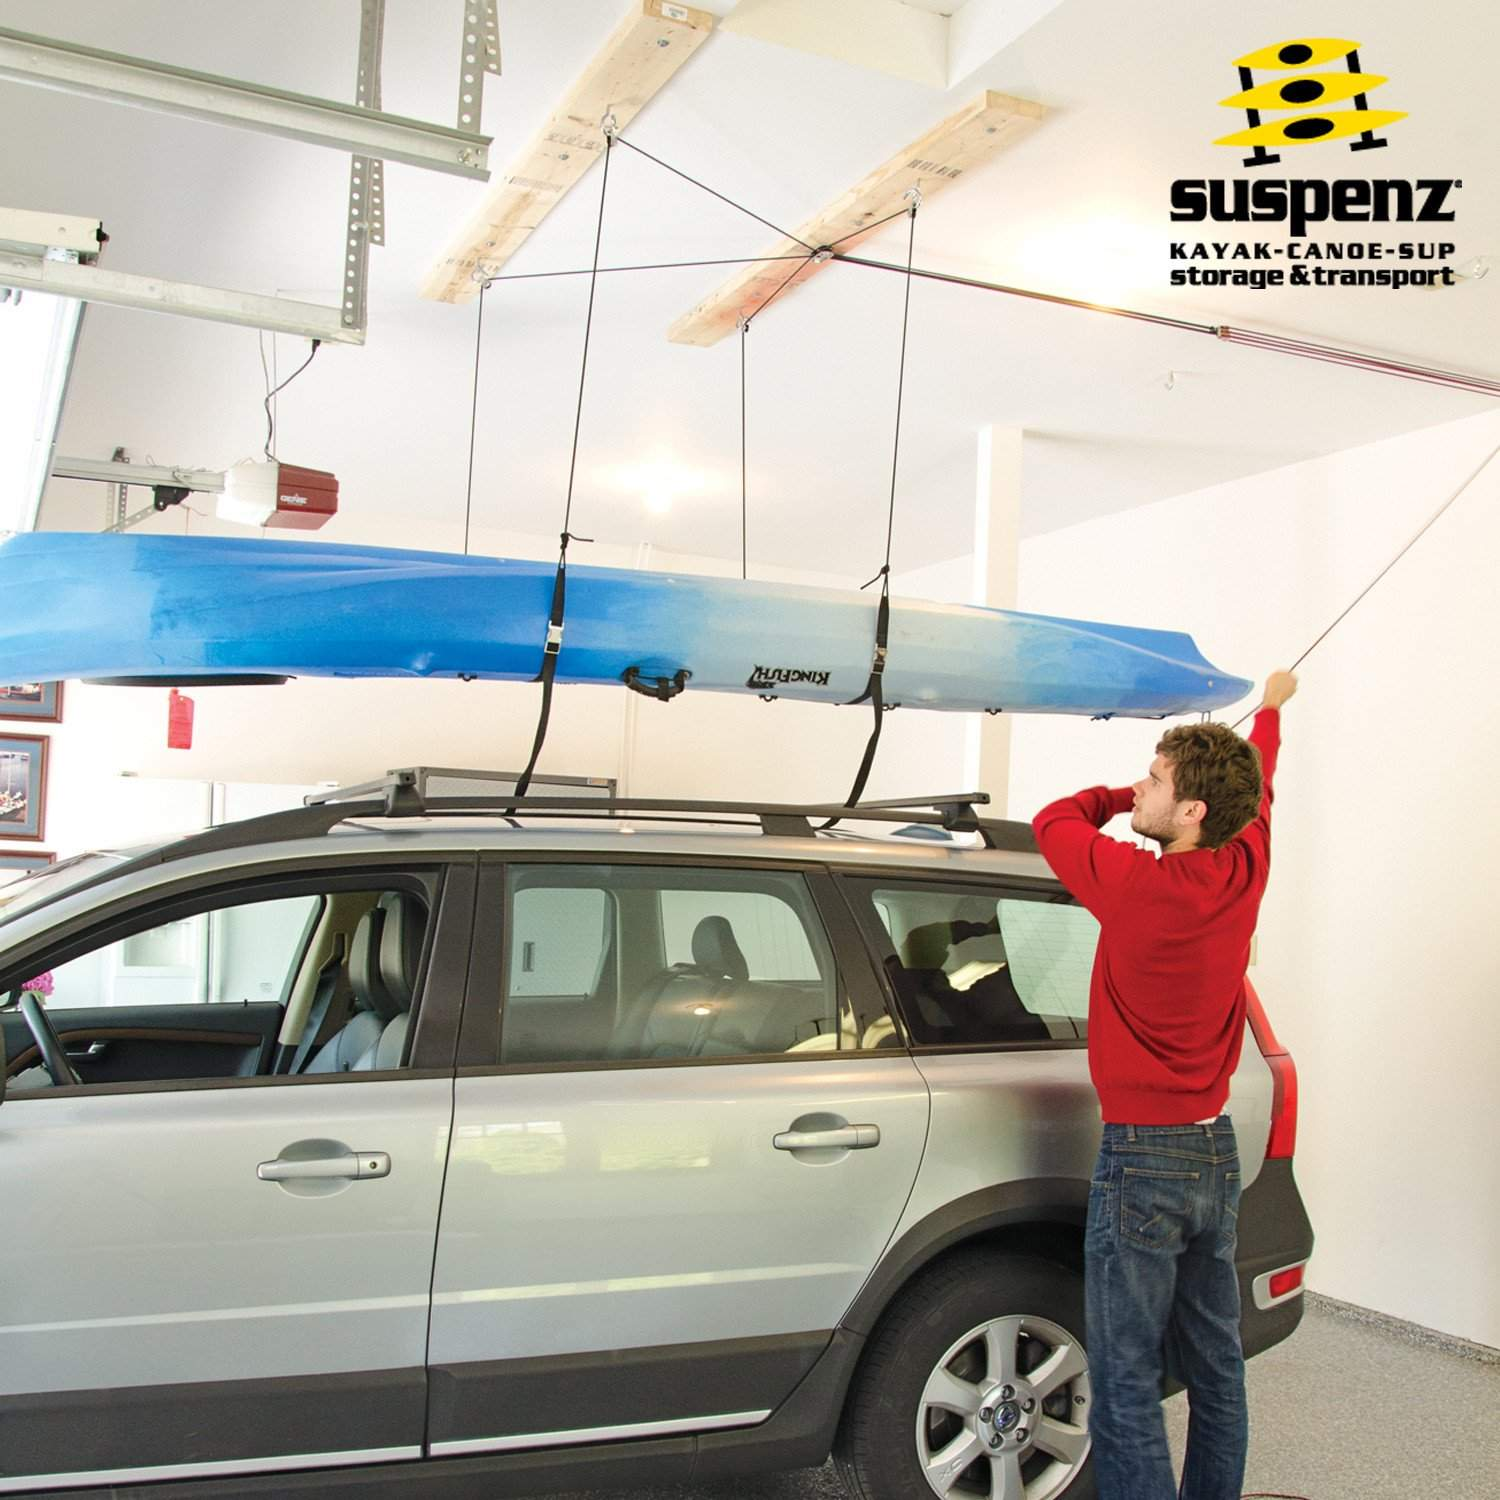 the overhead offering thinking to storage is garage function pulled easy when ceilings down ceiling ideas lift retractable vertical store